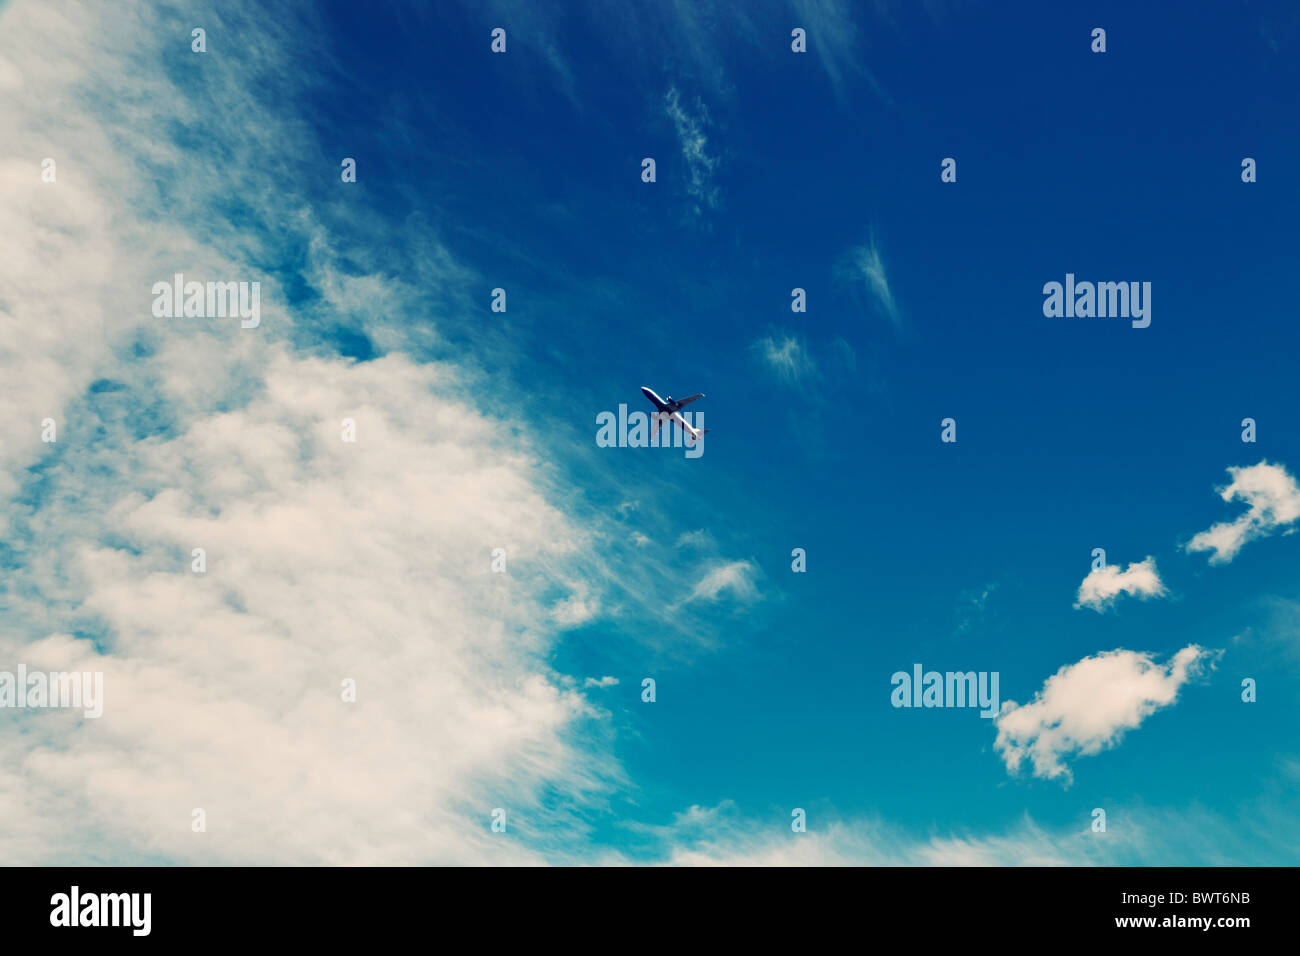 Commercial airliner in cloudy sky - Stock Image